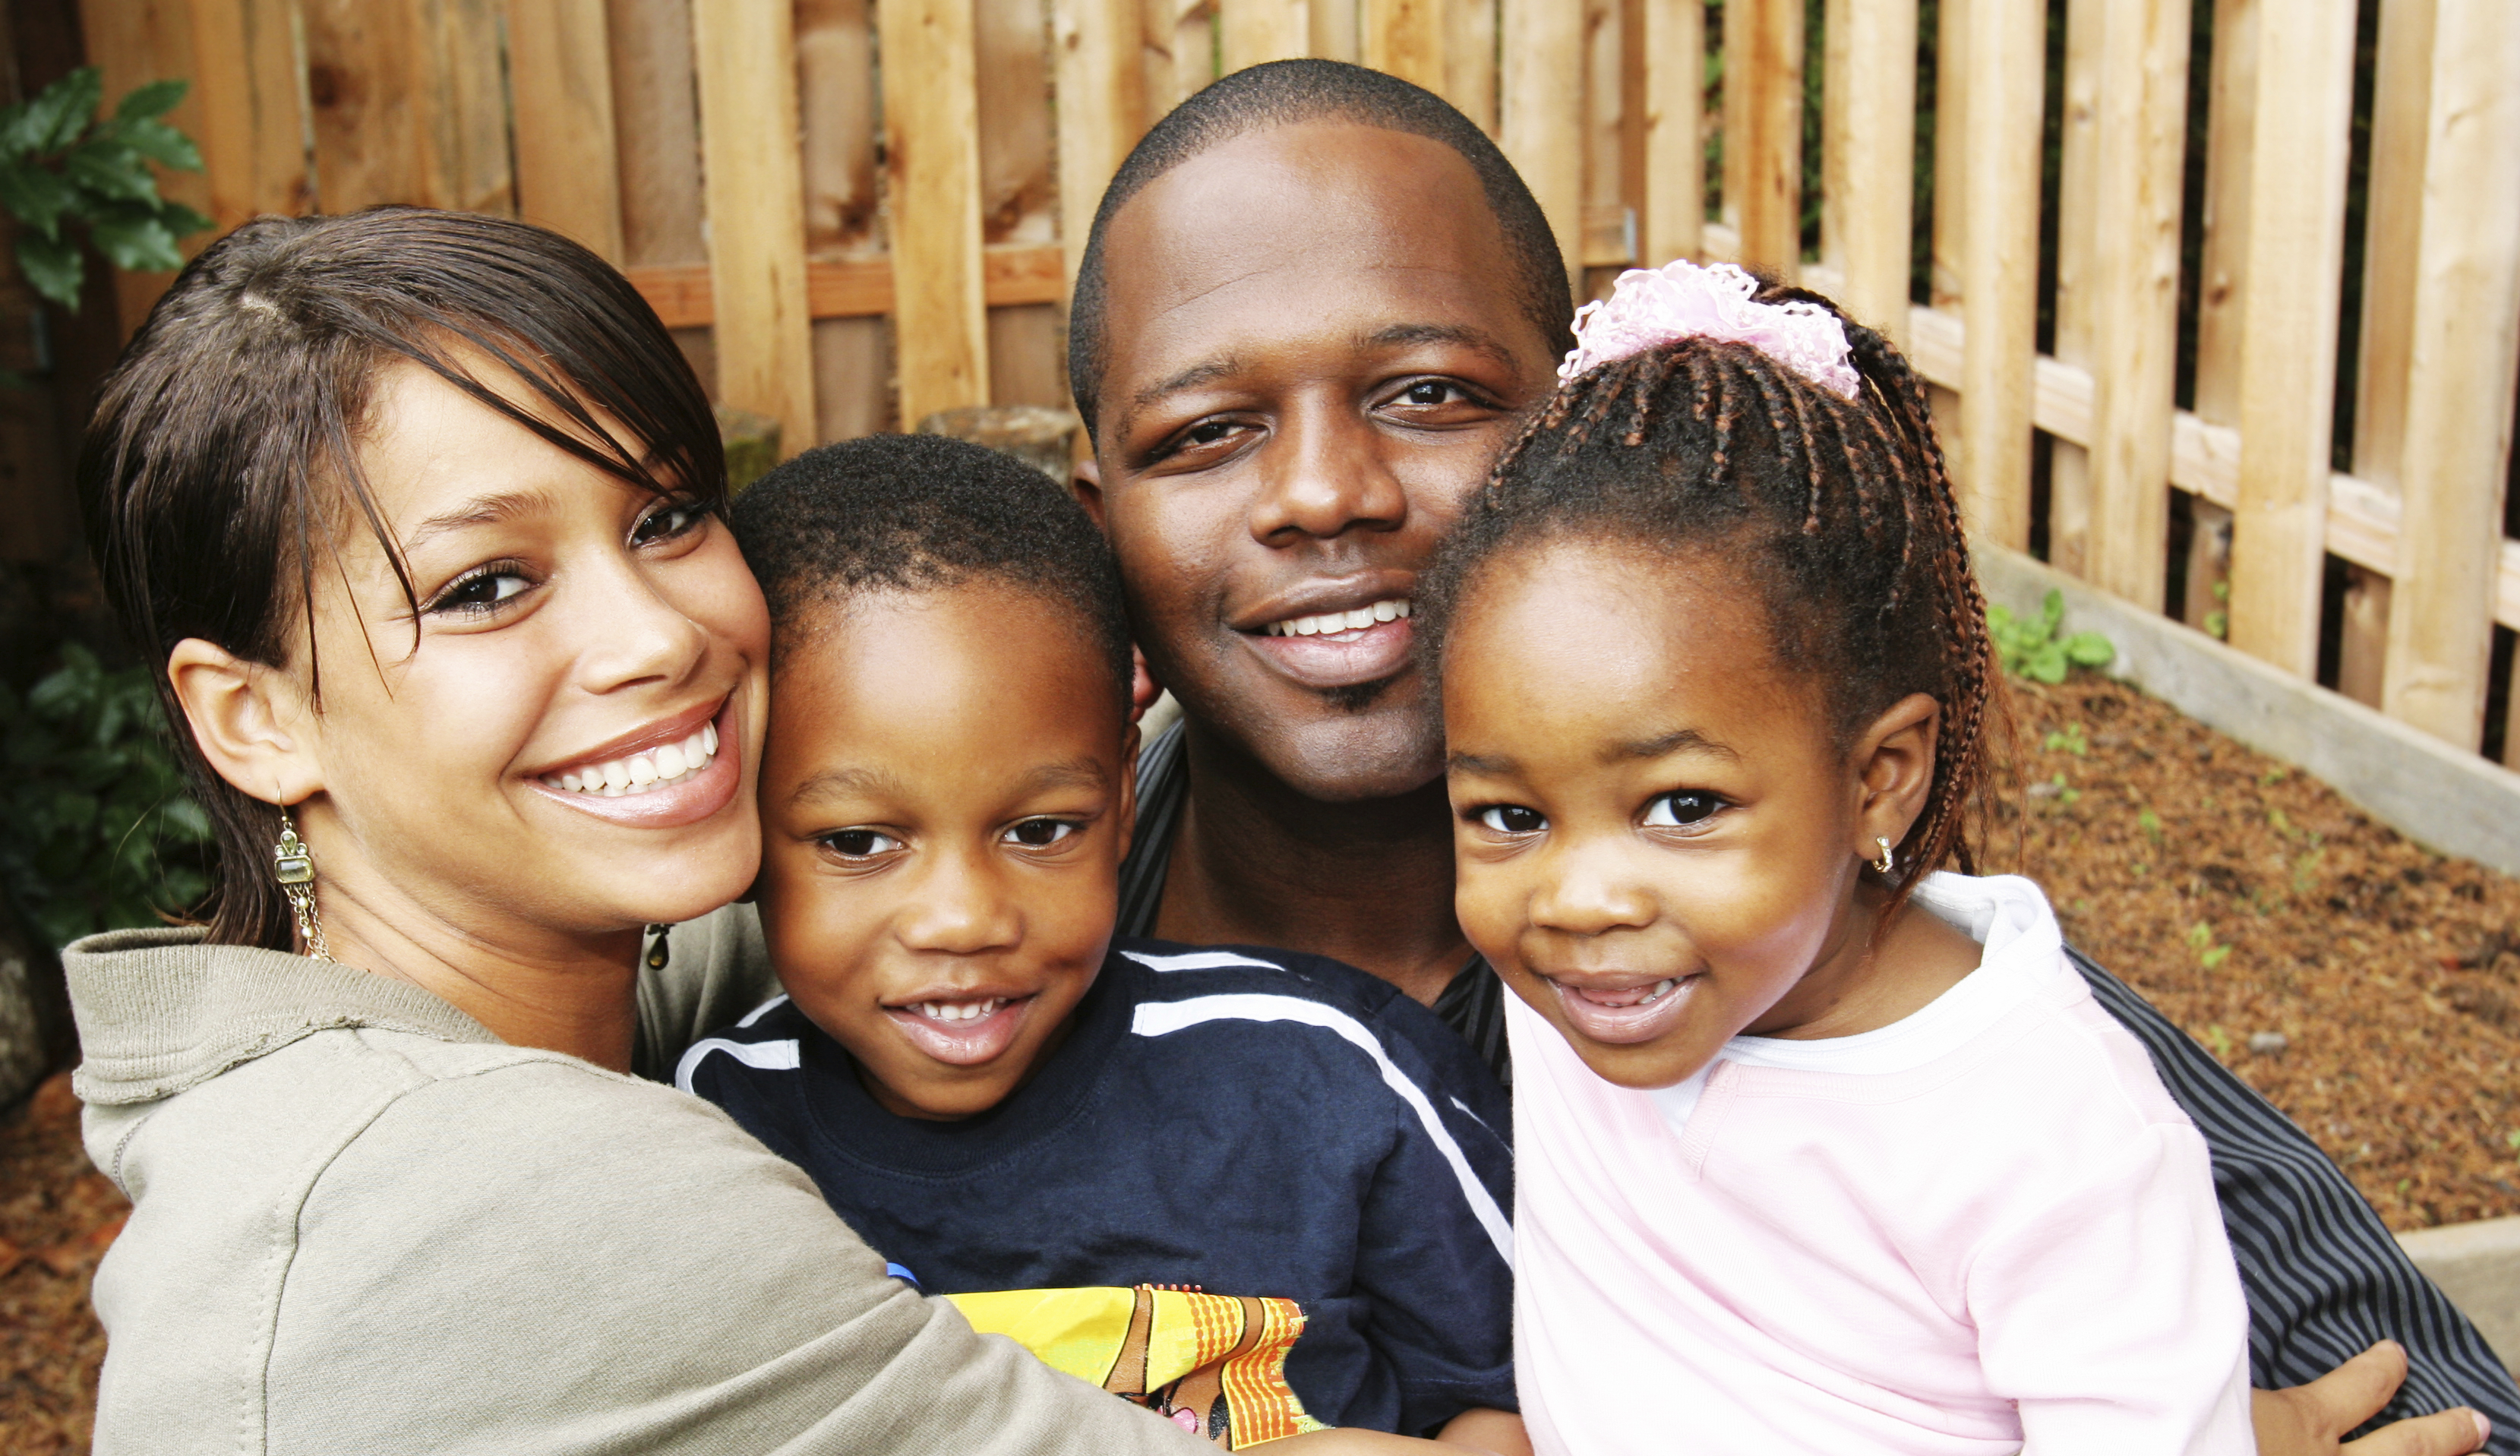 African-centered therapy and mental health services for Black families at Onipa